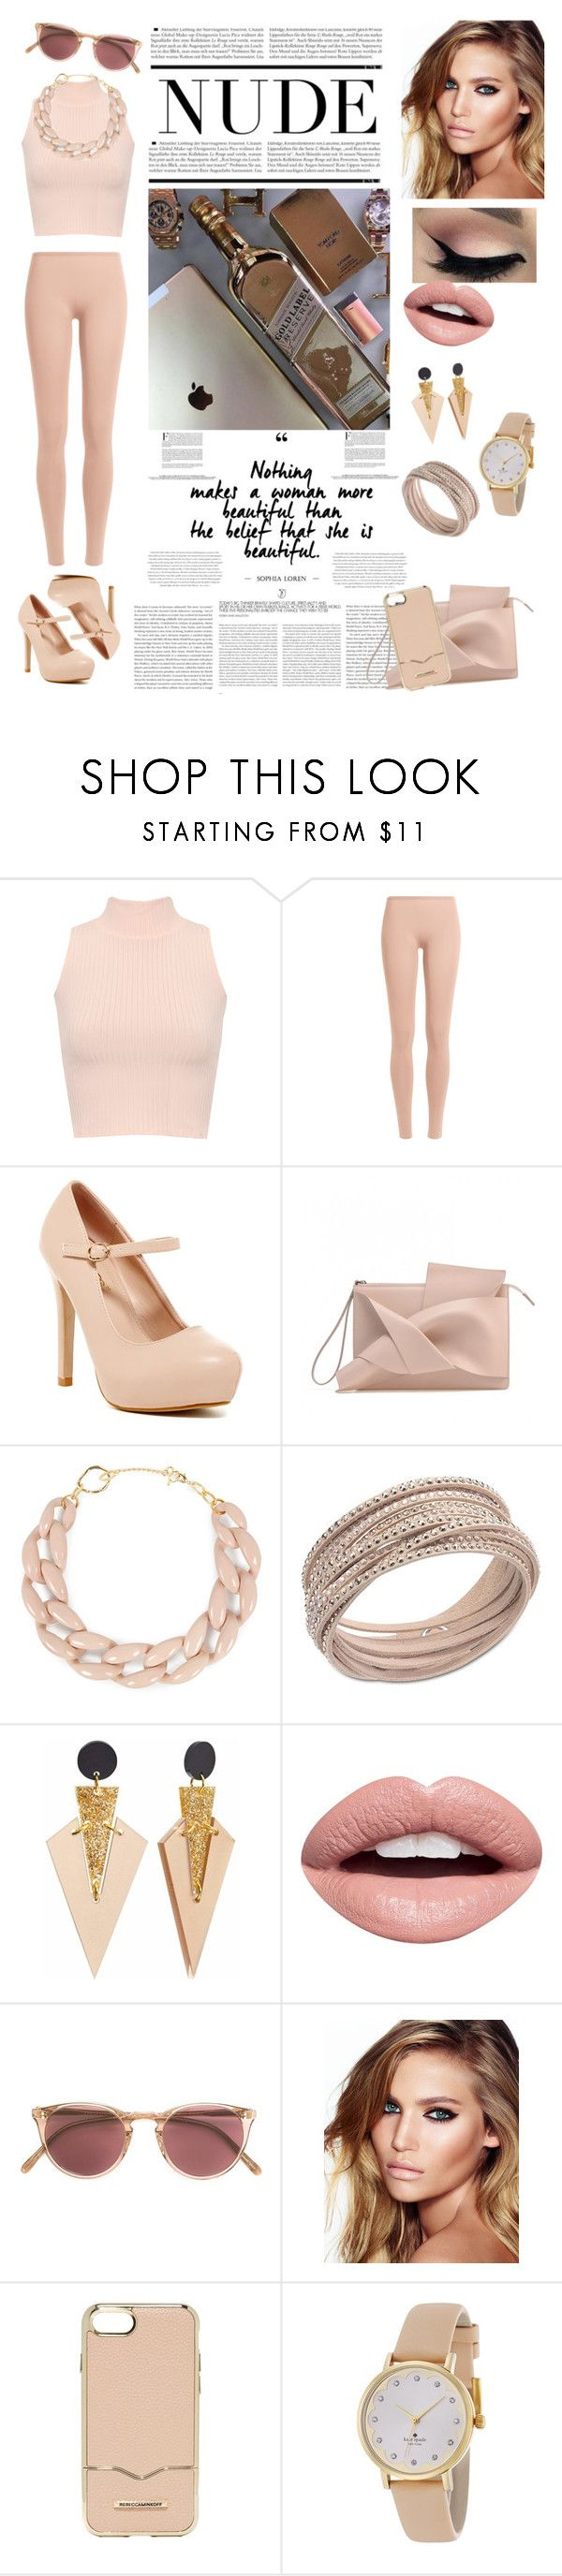 """""""Nude Outfits - Hanging Out"""" by allyssister ❤ liked on Polyvore featuring WearAll, Valentino, DIANA BROUSSARD, Swarovski, Toolally, Nevermind, Oliver Peoples, Charlotte Tilbury, Rebecca Minkoff and Kate Spade"""